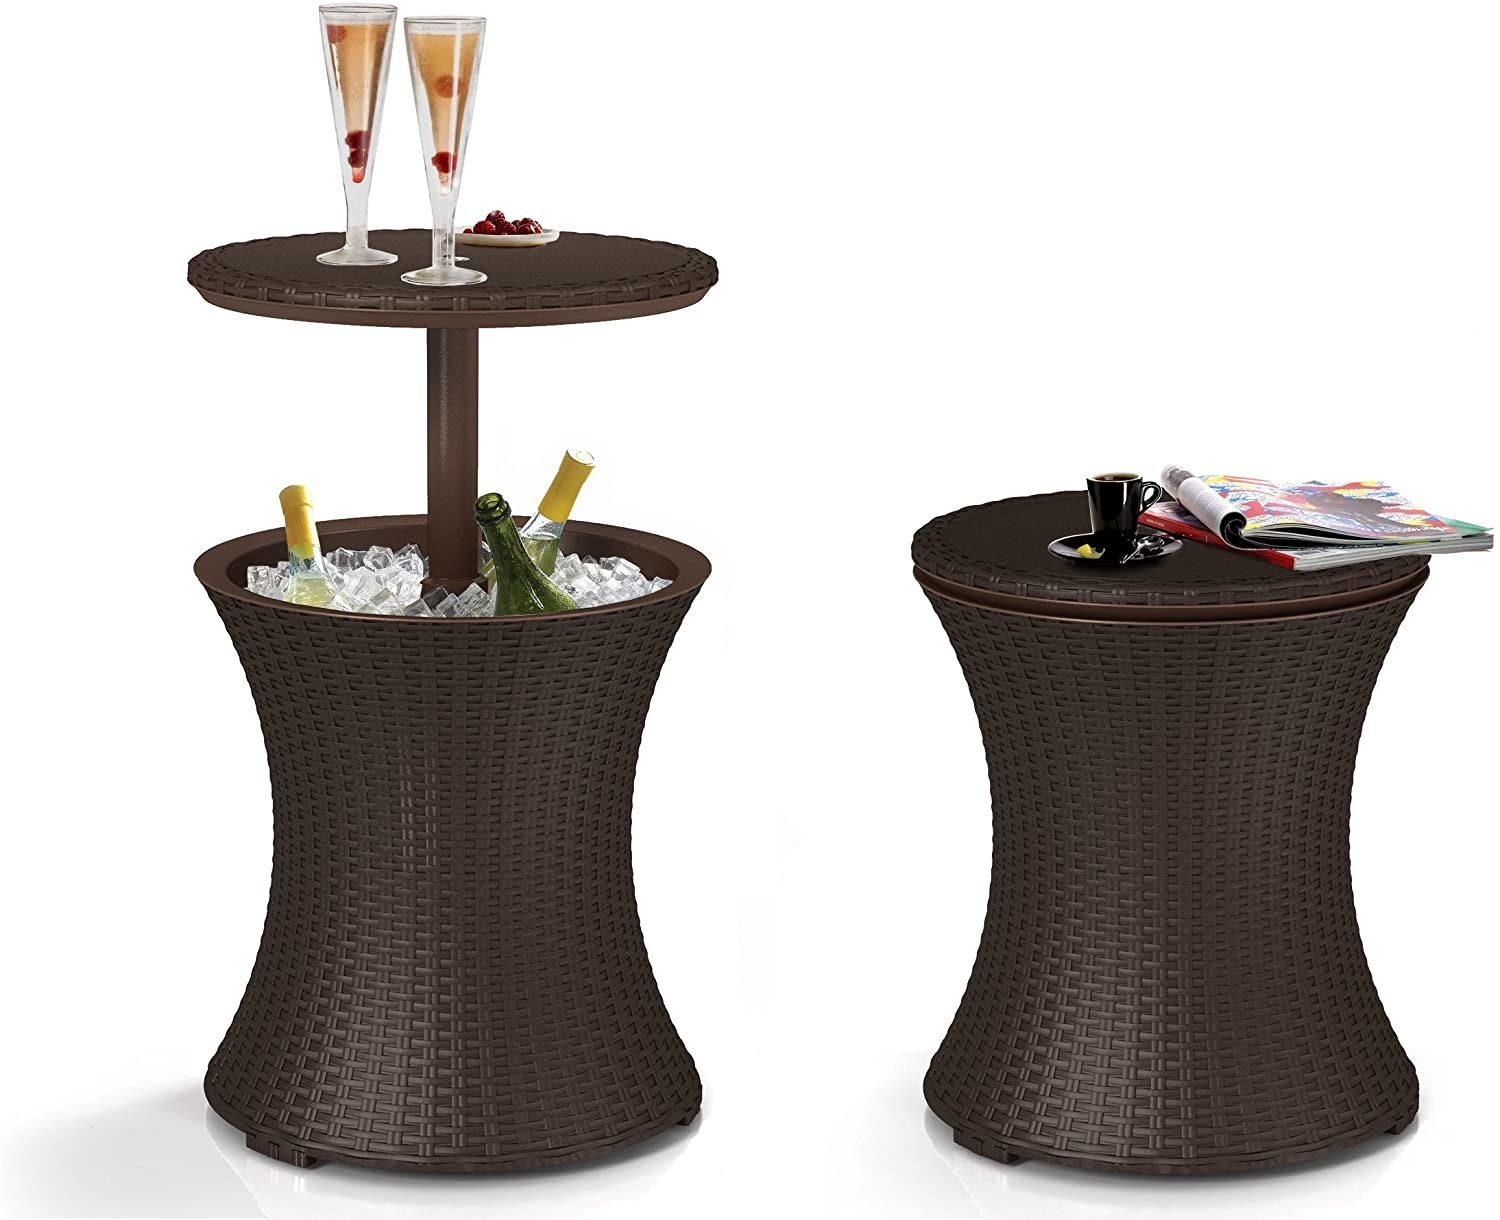 the side table with the top raised to reveal ice and bottles within, also view of the table jut as table